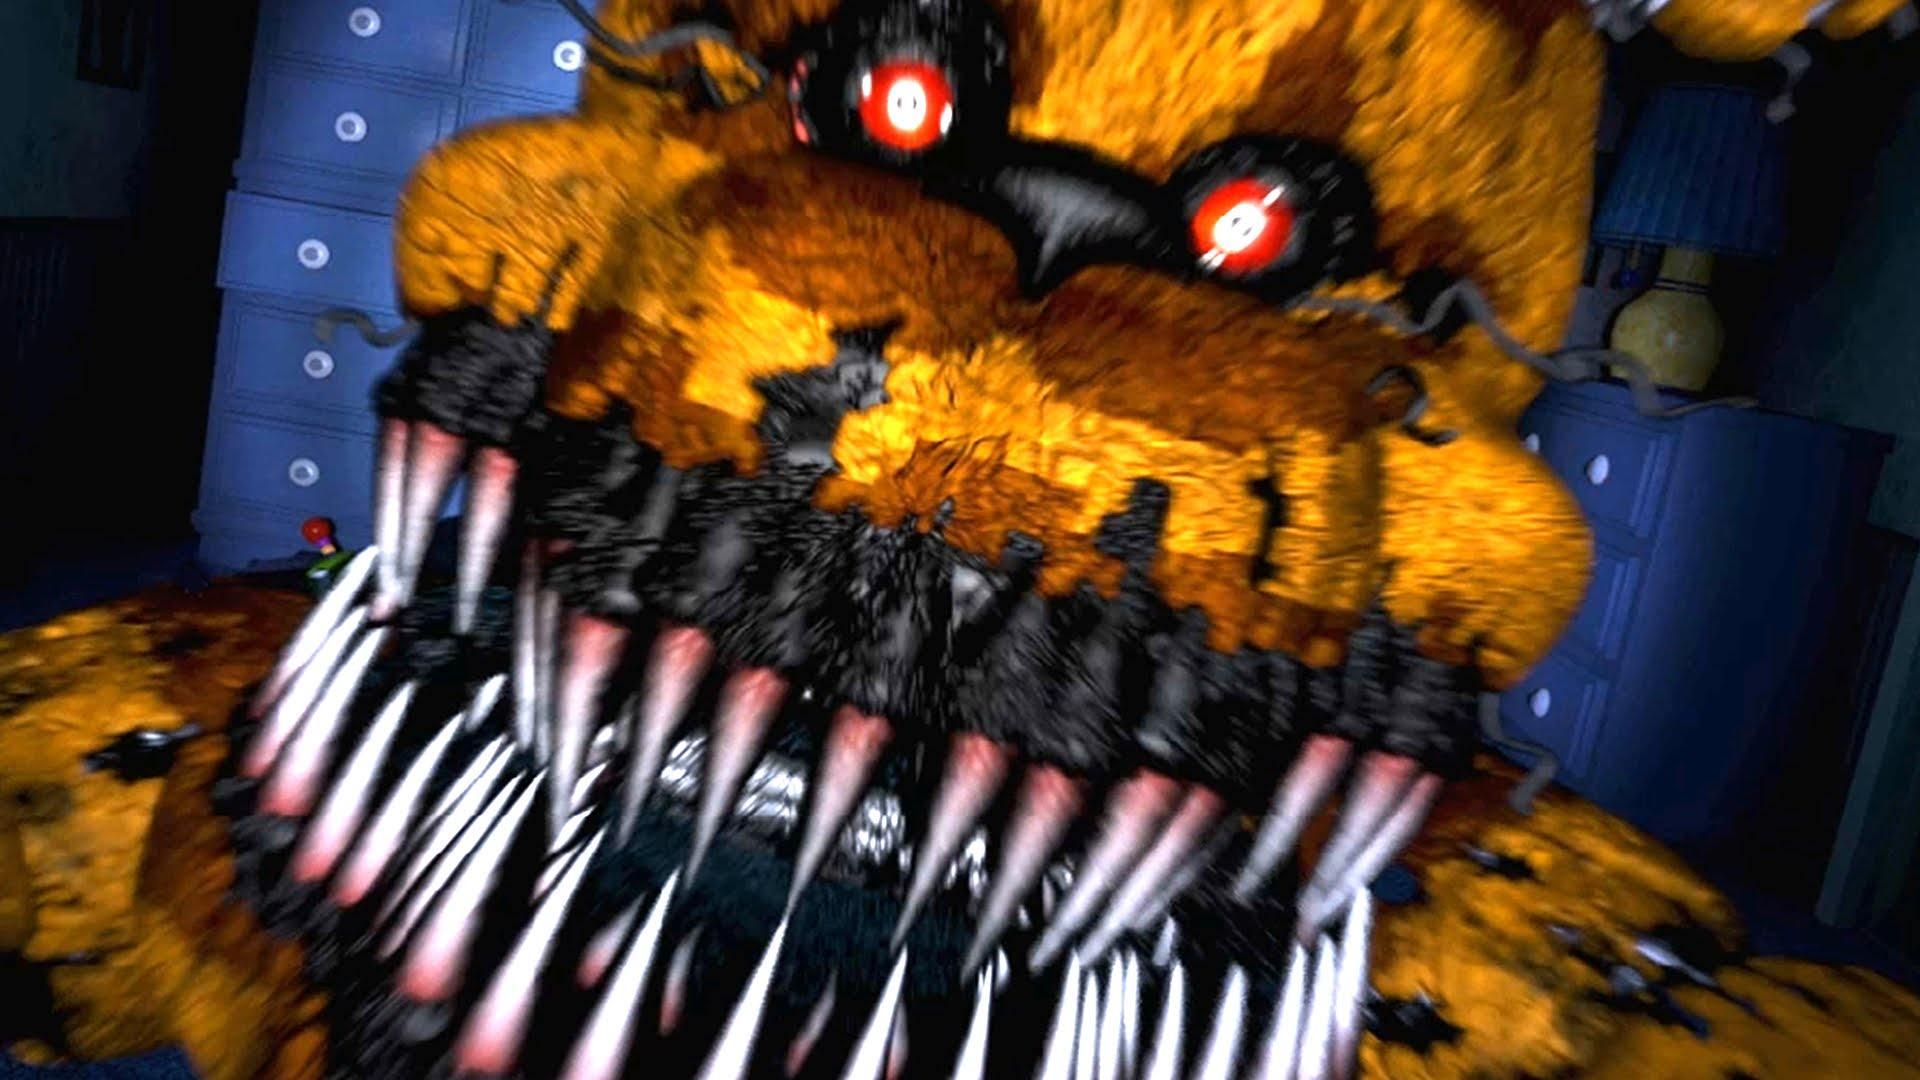 Five nights at freddy s images nightmare fredbear hd wallpaper and